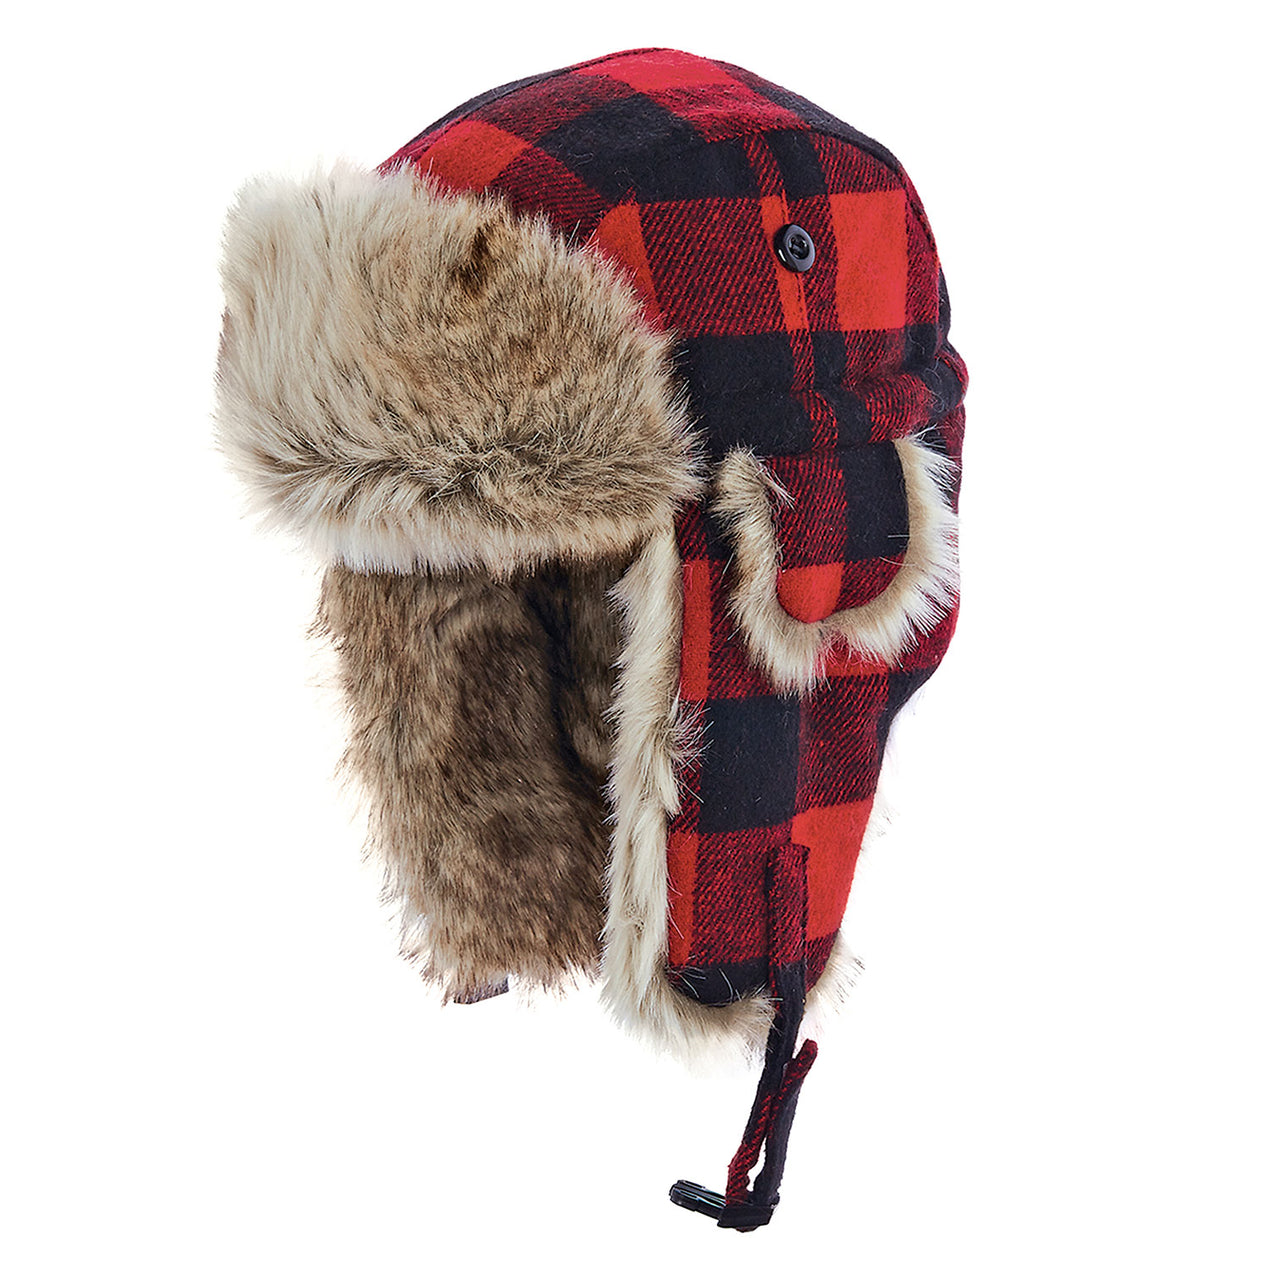 d9e3c06ad23 Woolrich Women s Wool Blend Buffalo Check Trapper Hat